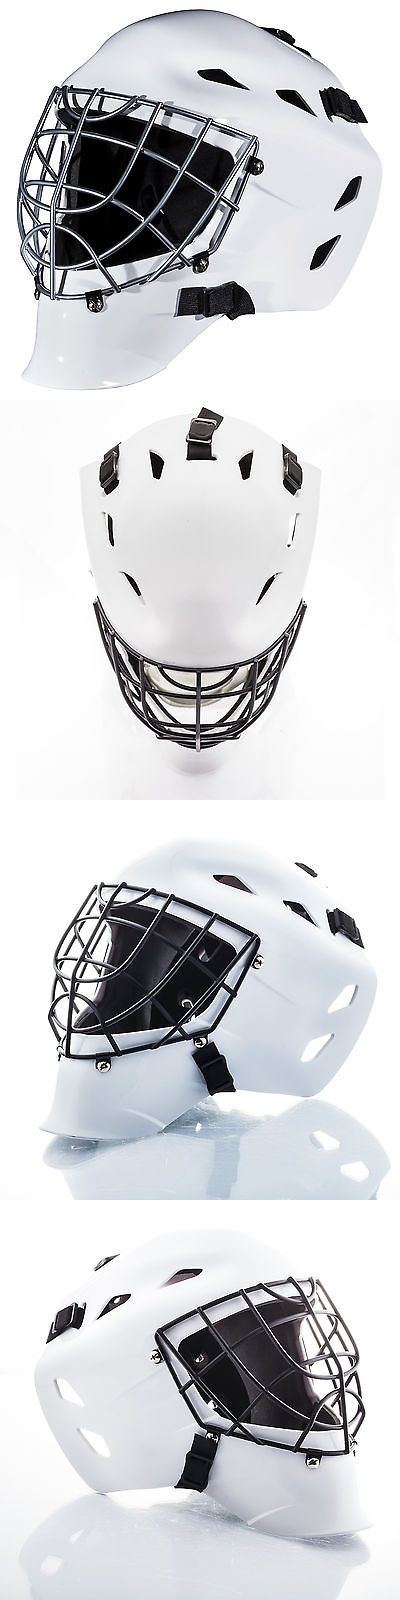 Other Hockey Clothing and Gear 165934: Franklin Gfm 1500 White Street Hockey Goalie Face Mask (Ages 6-12) BUY IT NOW ONLY: $49.99